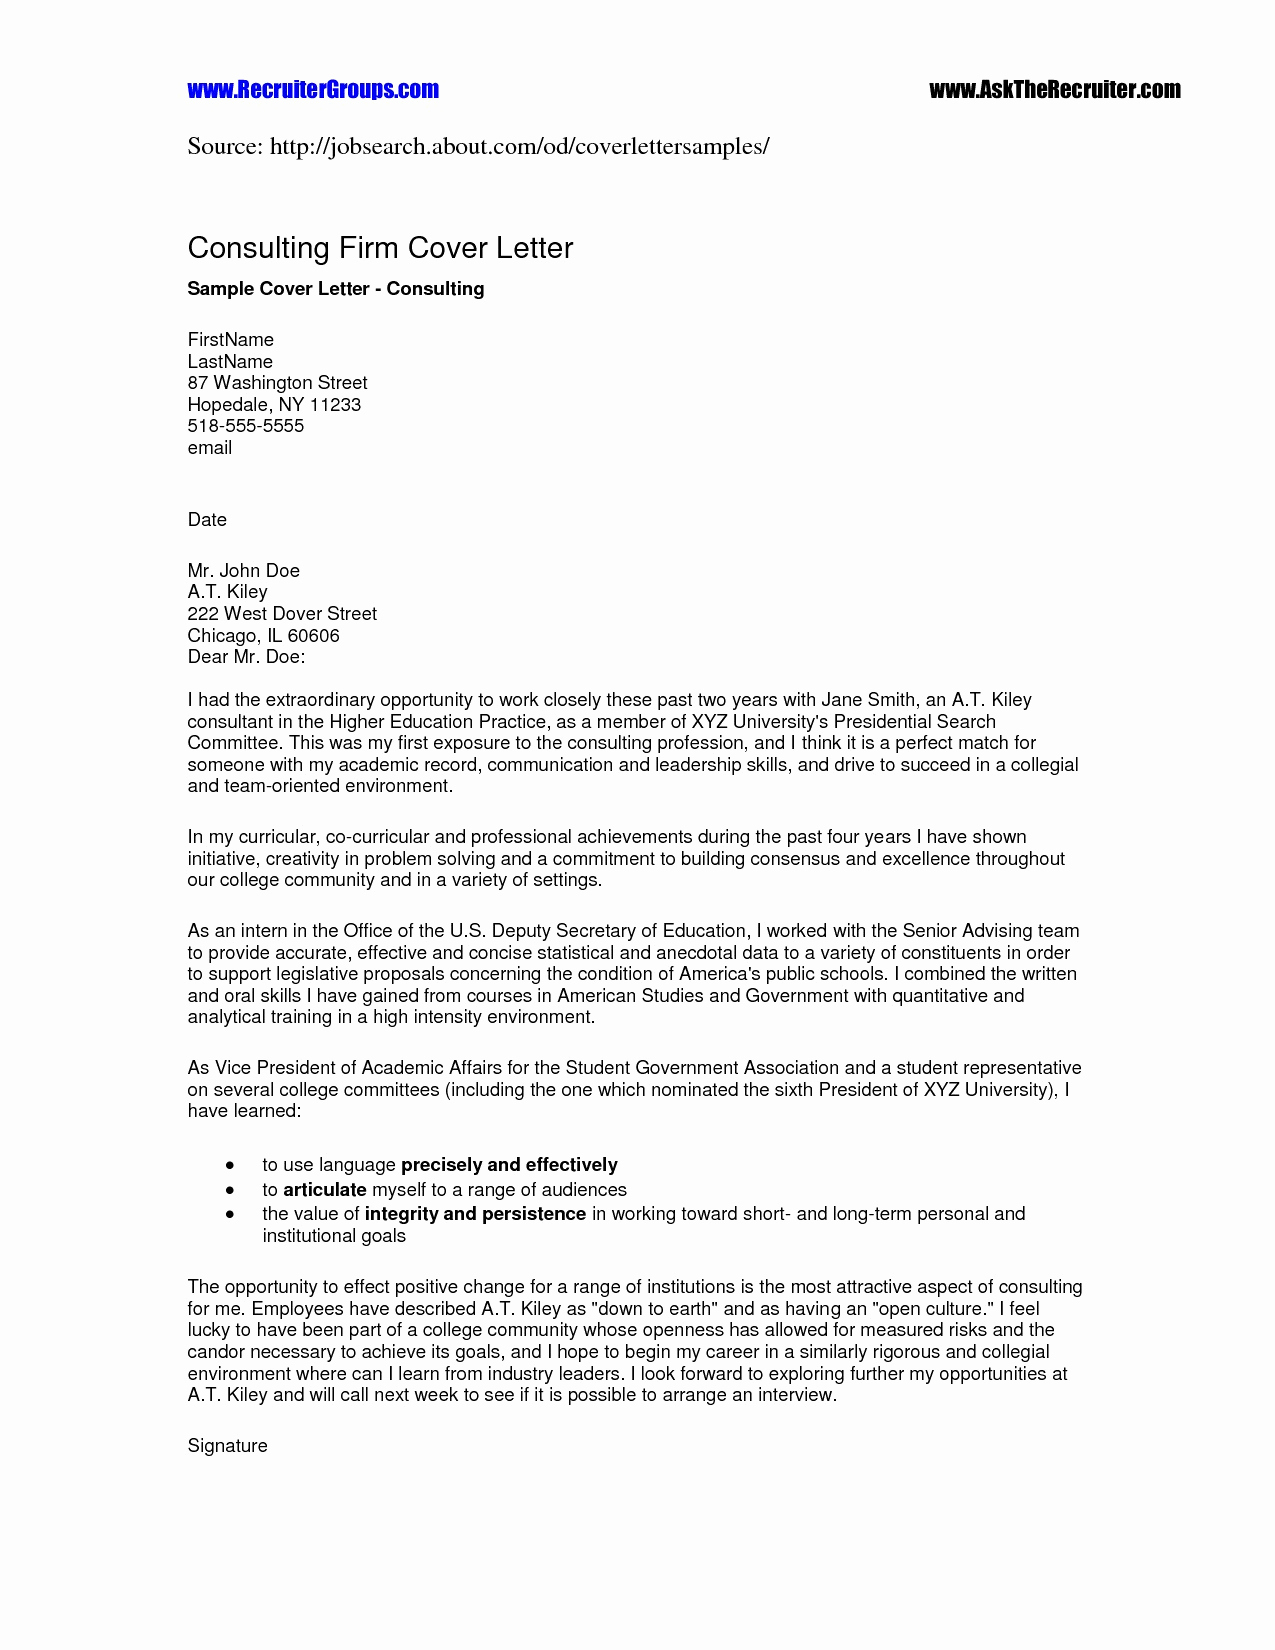 Personal Recommendation Letter Template - Personal Re Mendation Letter Template Awesome Cover Letter Sample